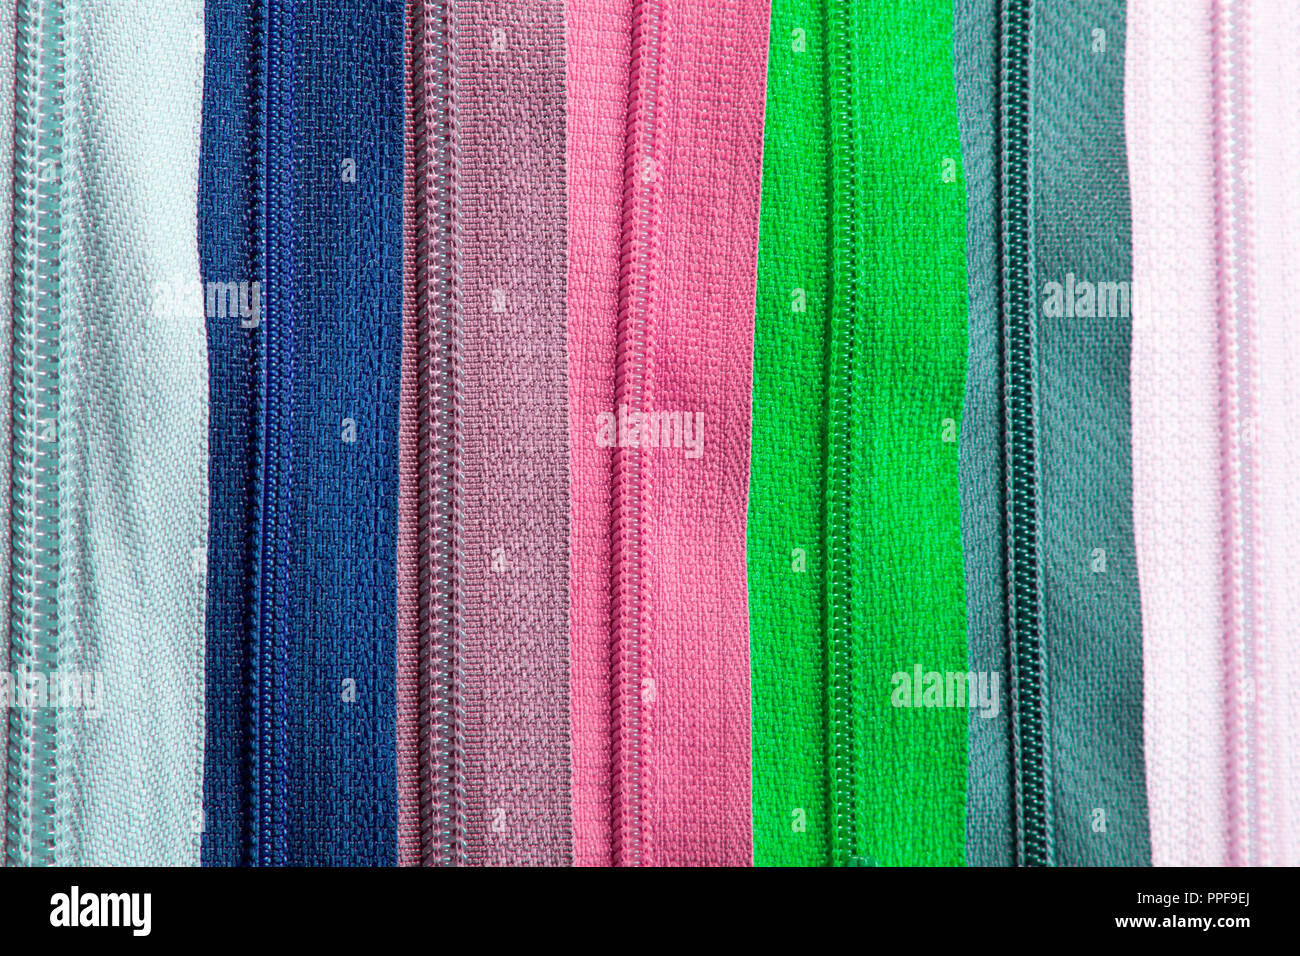 Colorful zippers texture for background - Stock Image